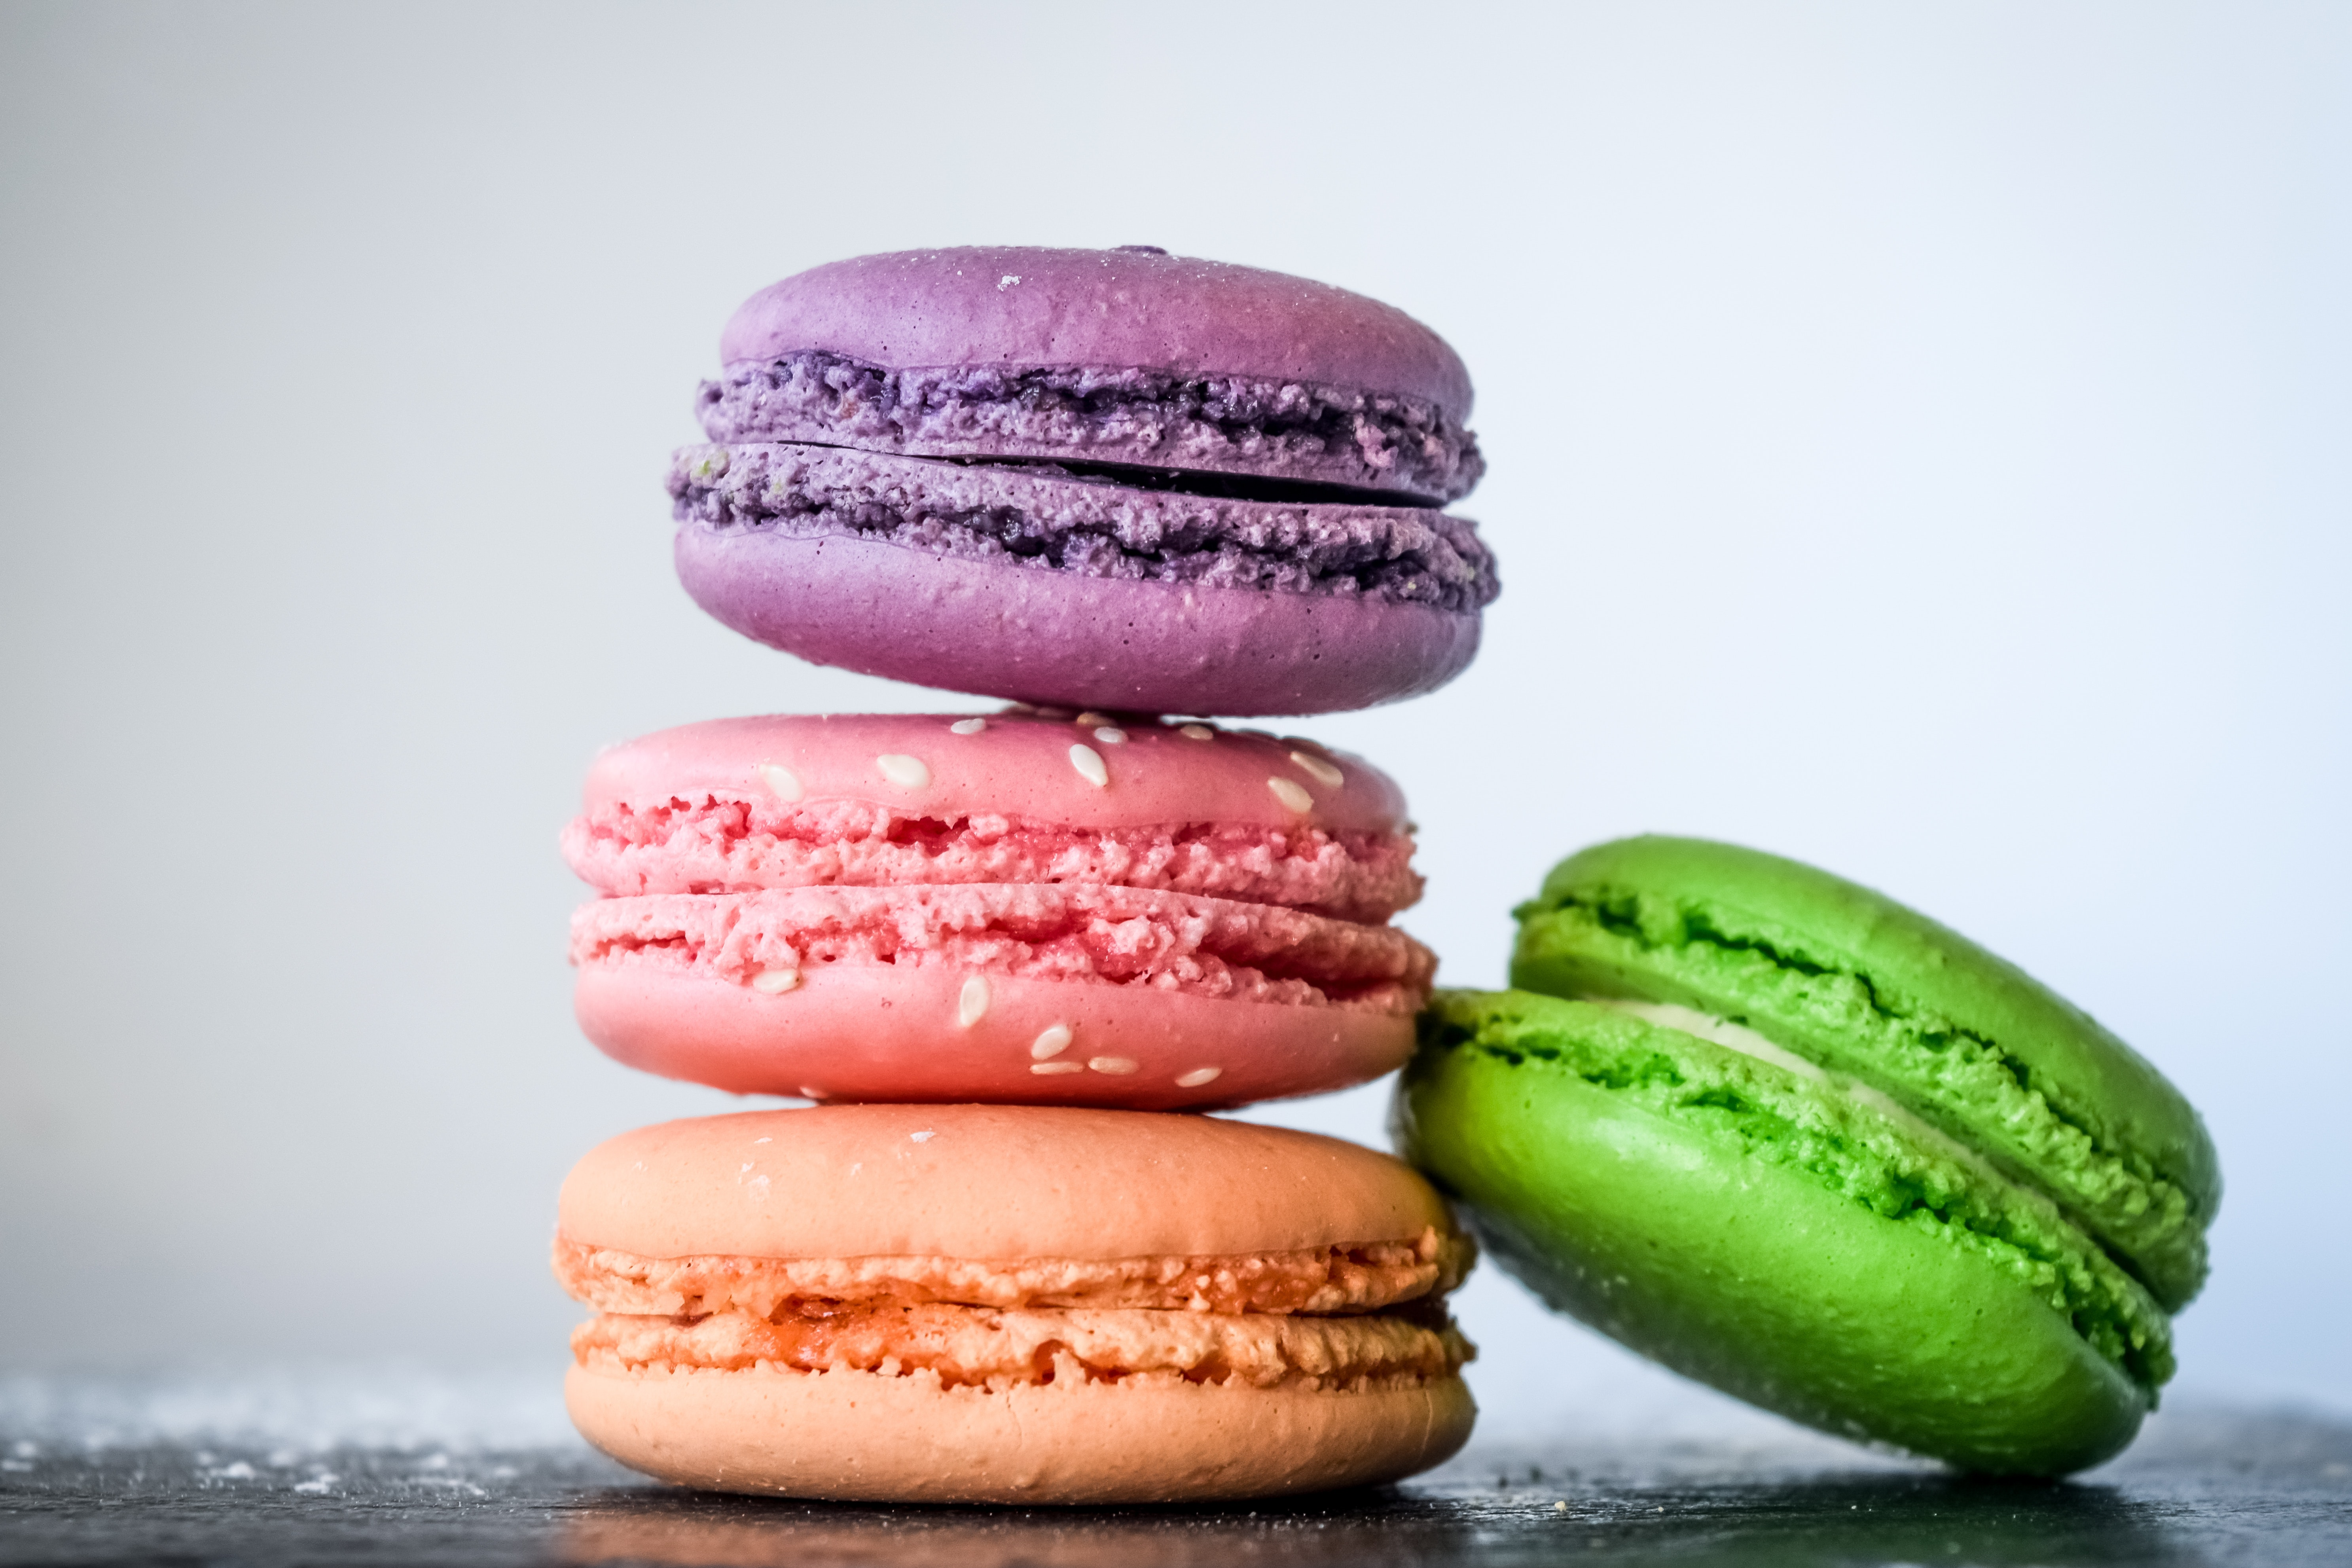 Four macarons in purple, pink, orange and green stacked on a table